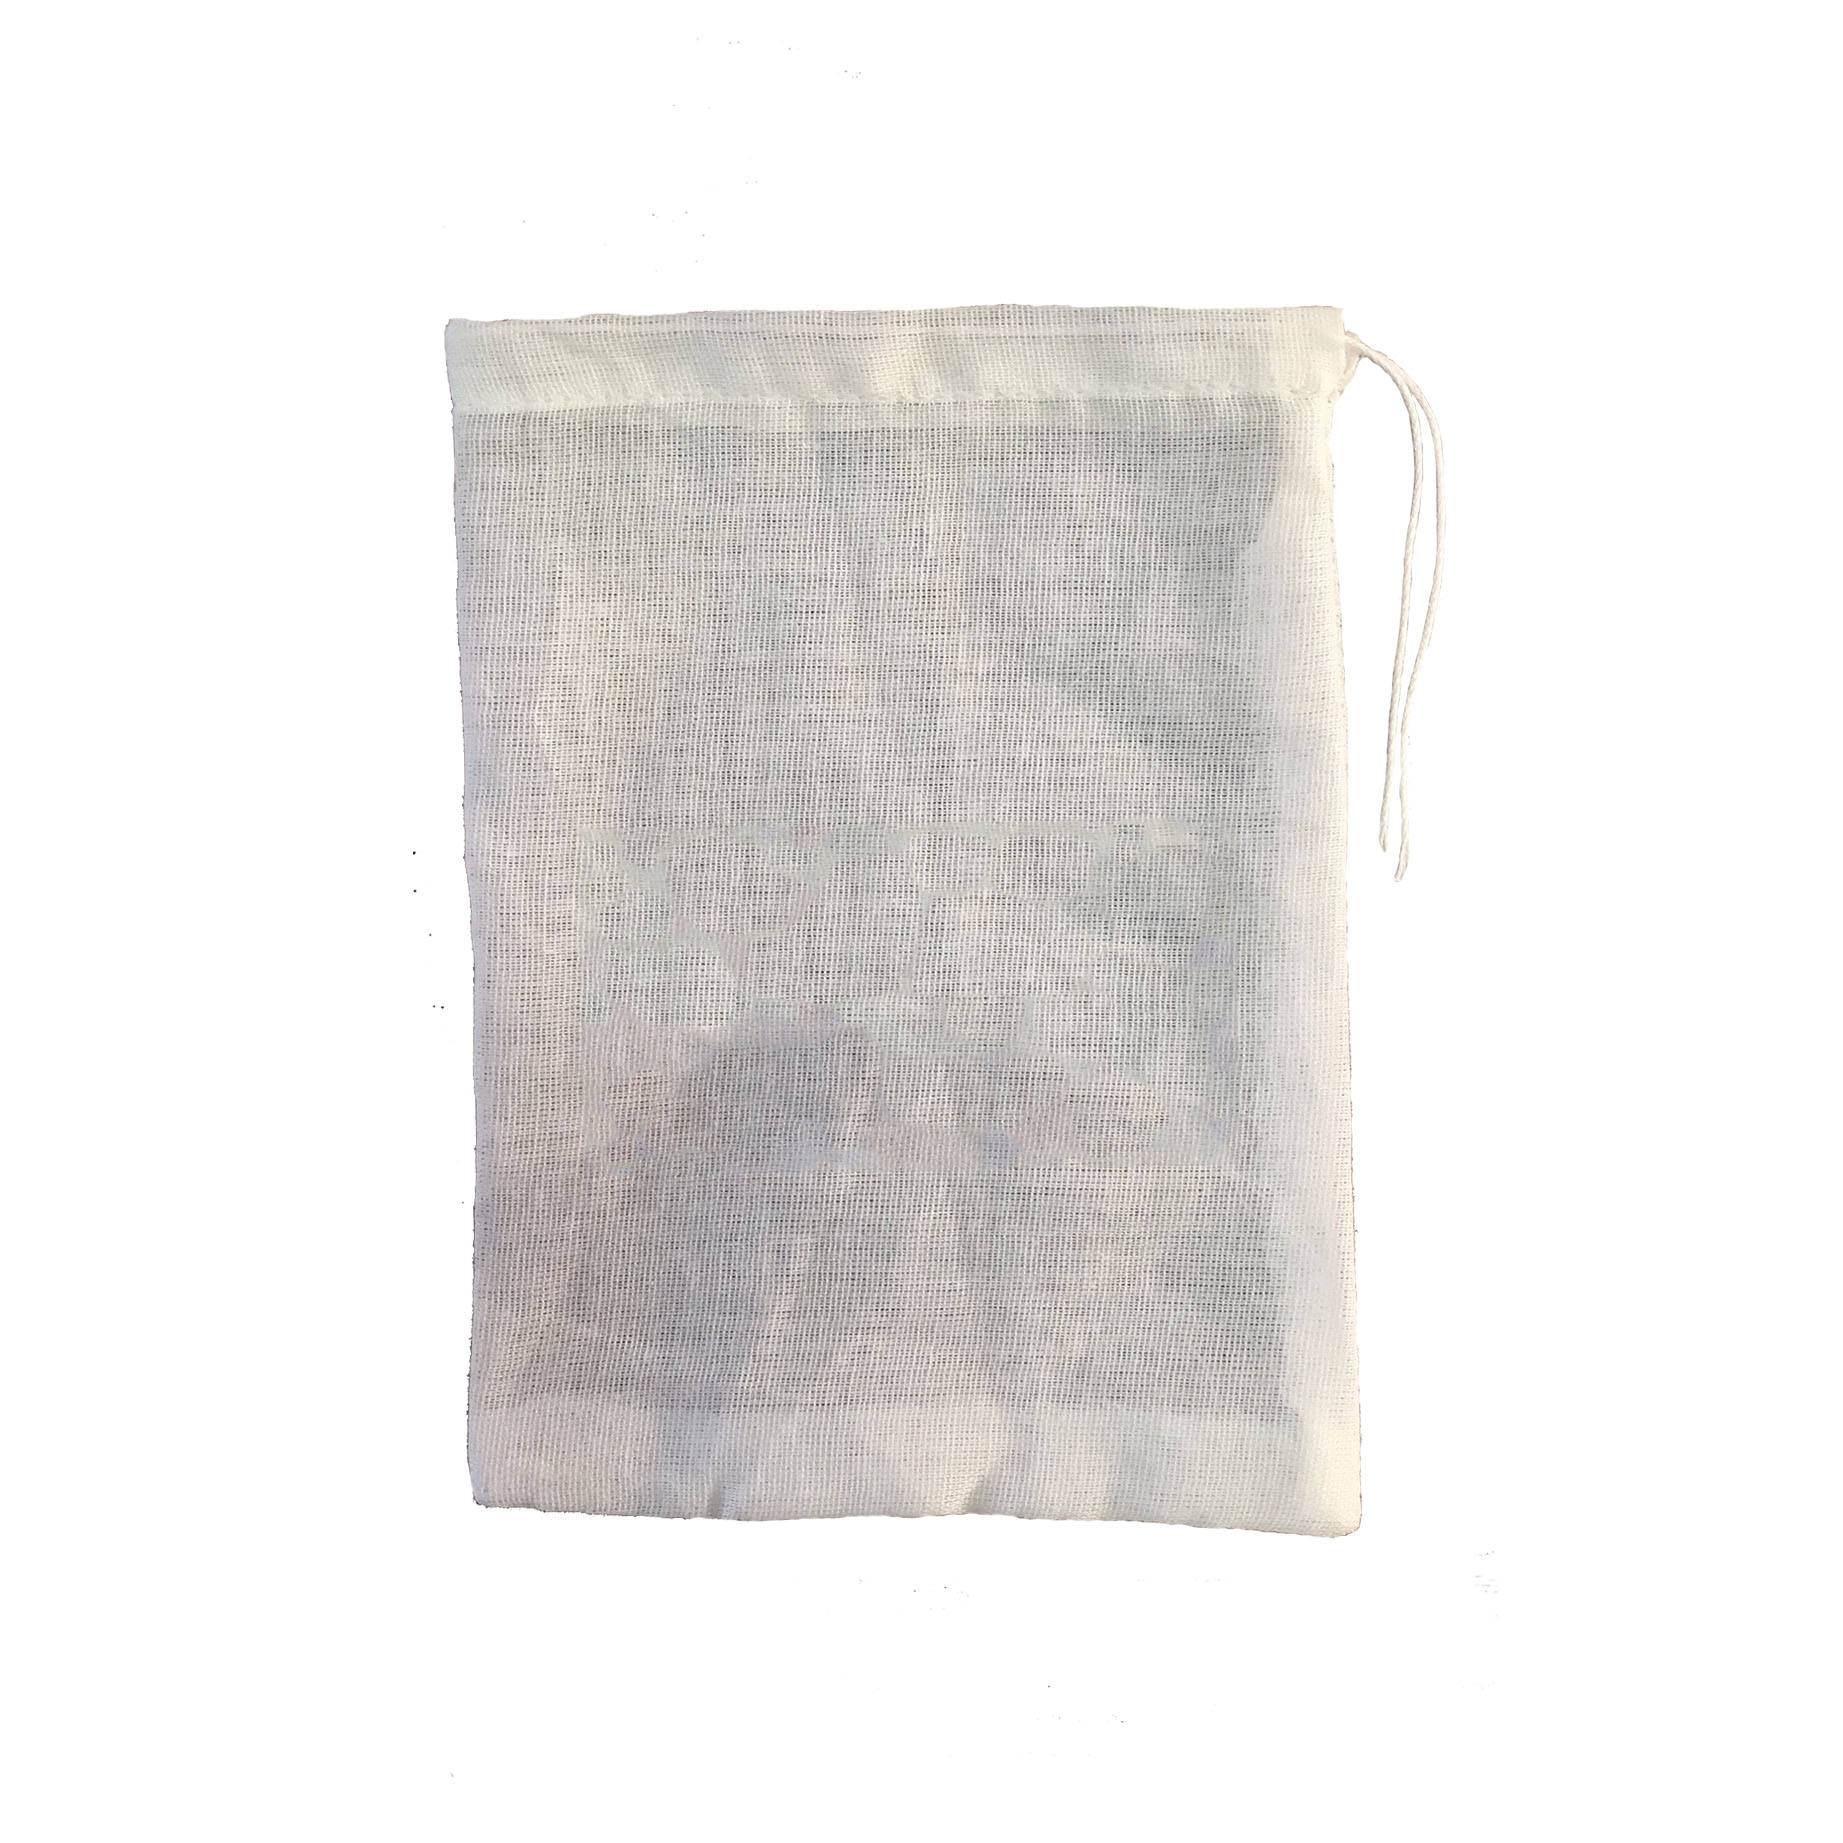 Eco-friendly Reusable Personalised Cotton Mesh Drawstring Bag Cotton Gauze Packaging Bag With String